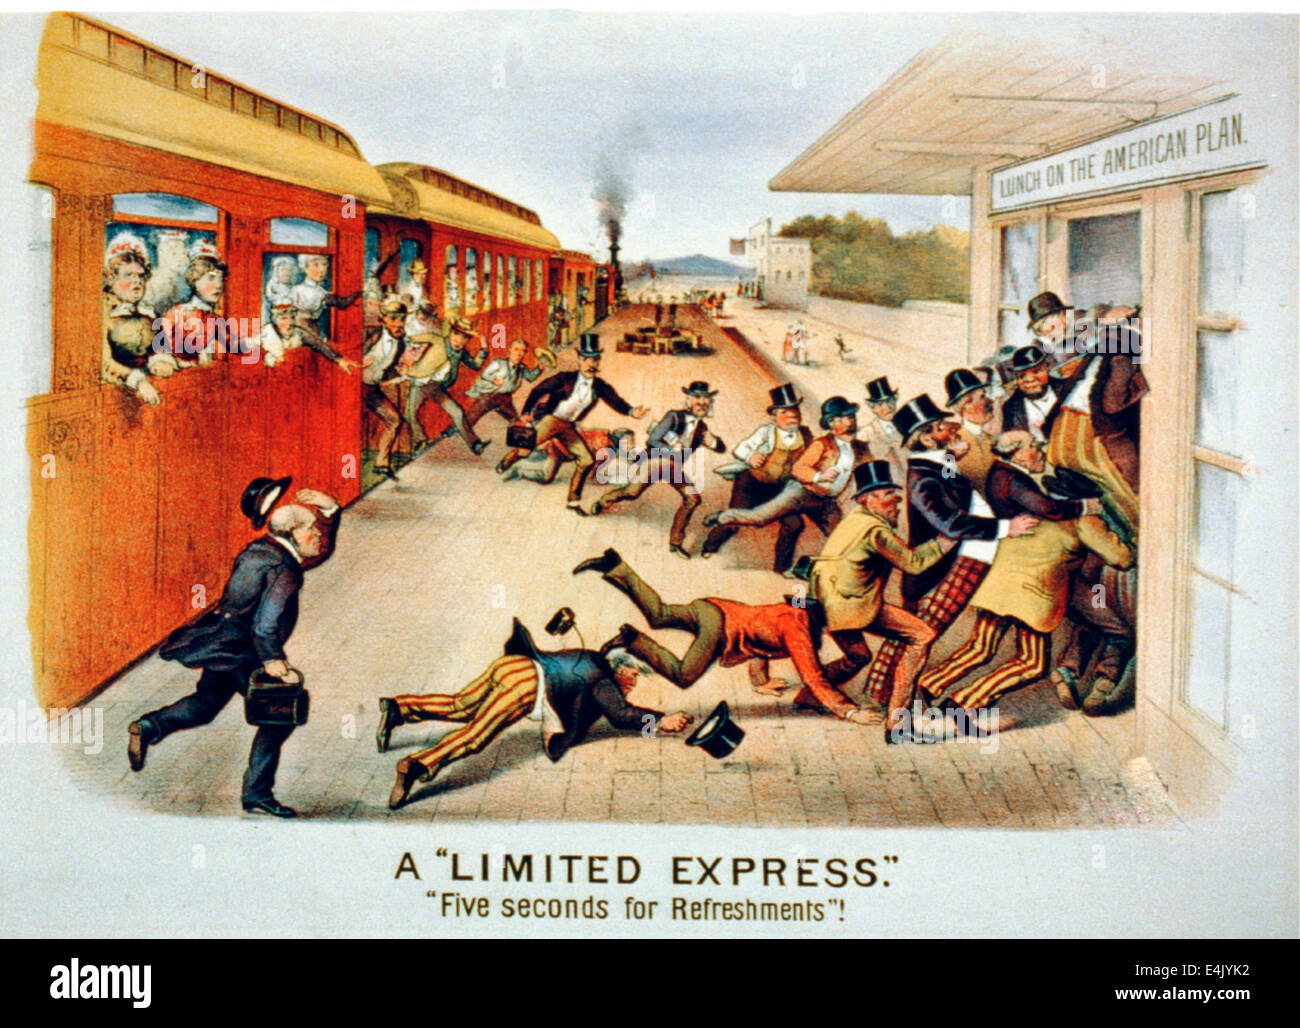 A Limited Express - Five Seconds for Refreshments - Passengers rush across a station platform from a train at left, - Stock Image